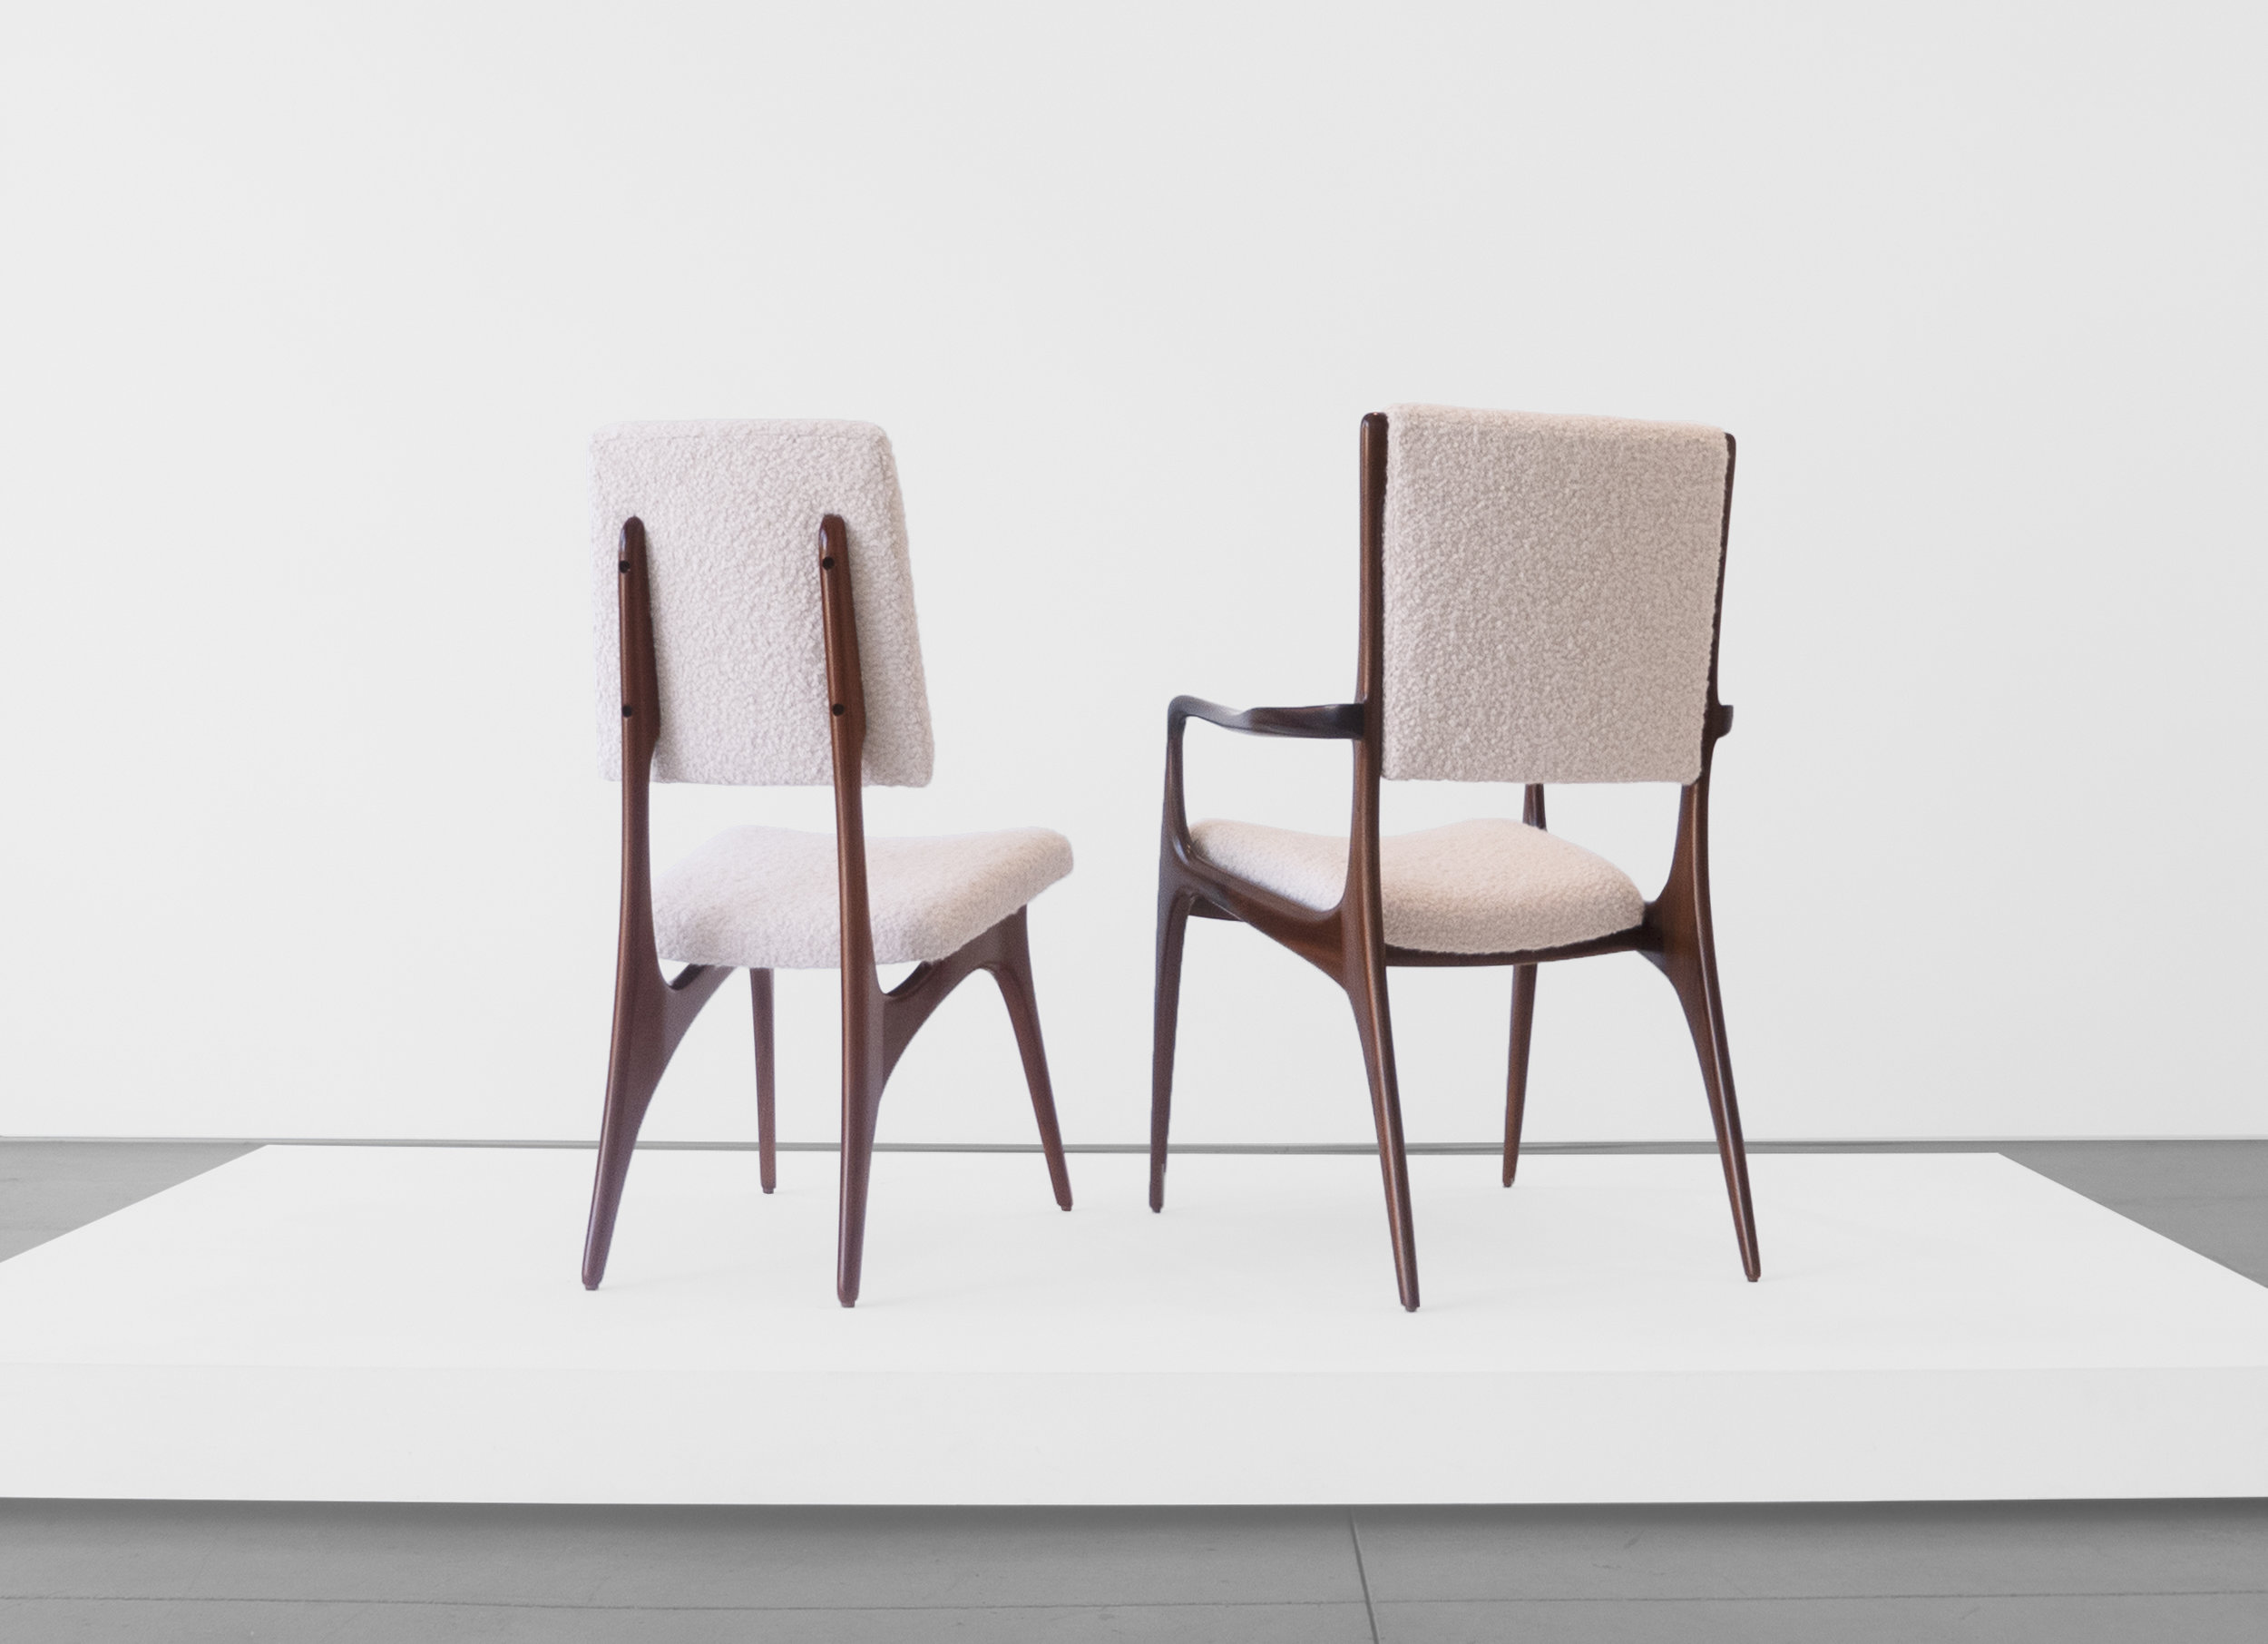 Vladimir Kagan Designed for Dreyfuss, Dining Chairs, c. 1950-1959, Walnut, Upholstery, 36.5 H x 24 W x 25 D inches_4.jpg